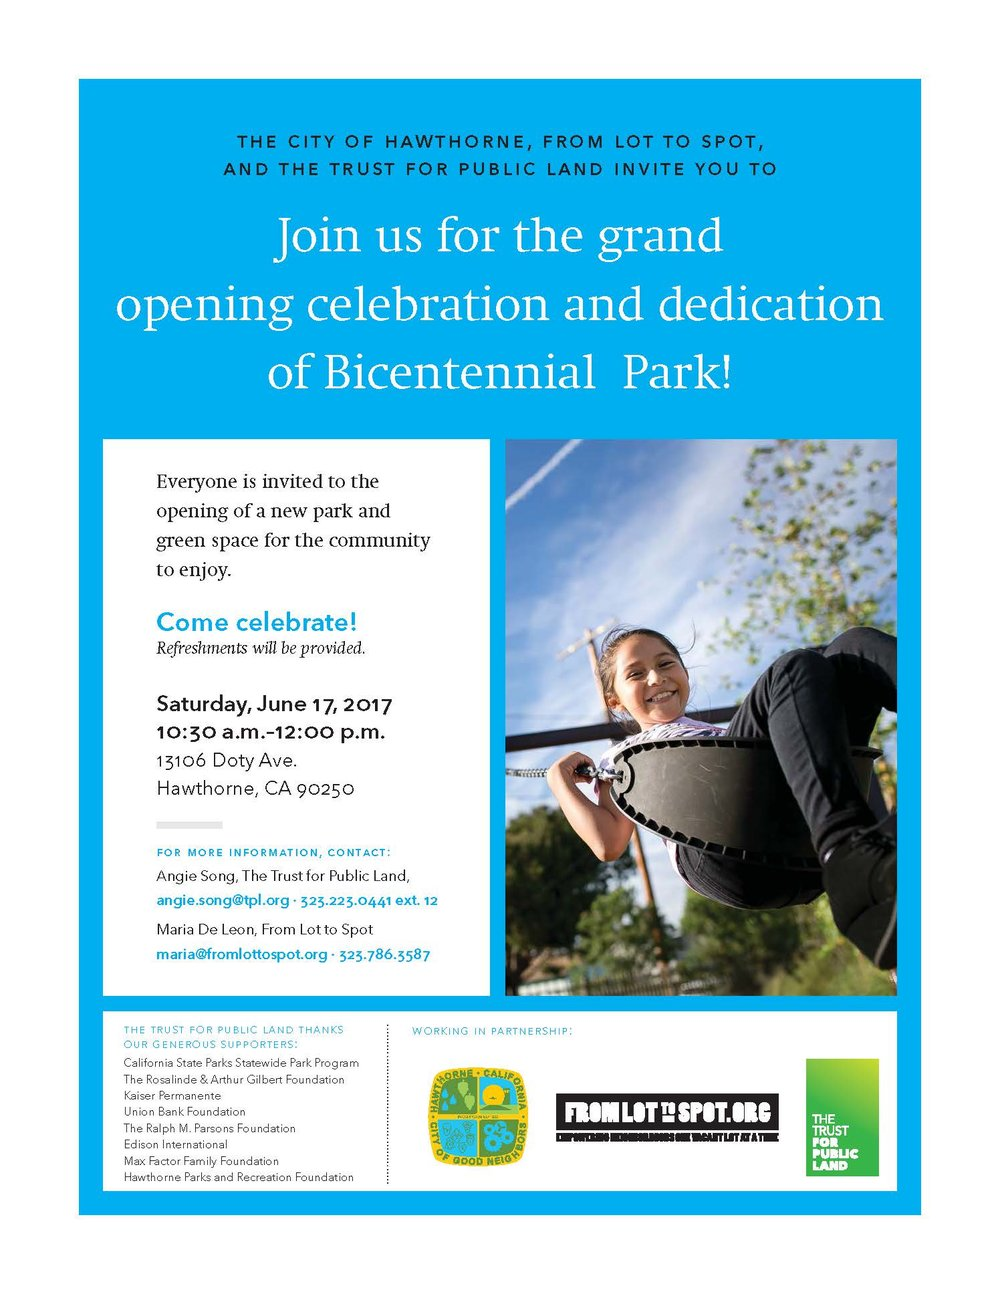 Bicentennial Park Dedication flyer